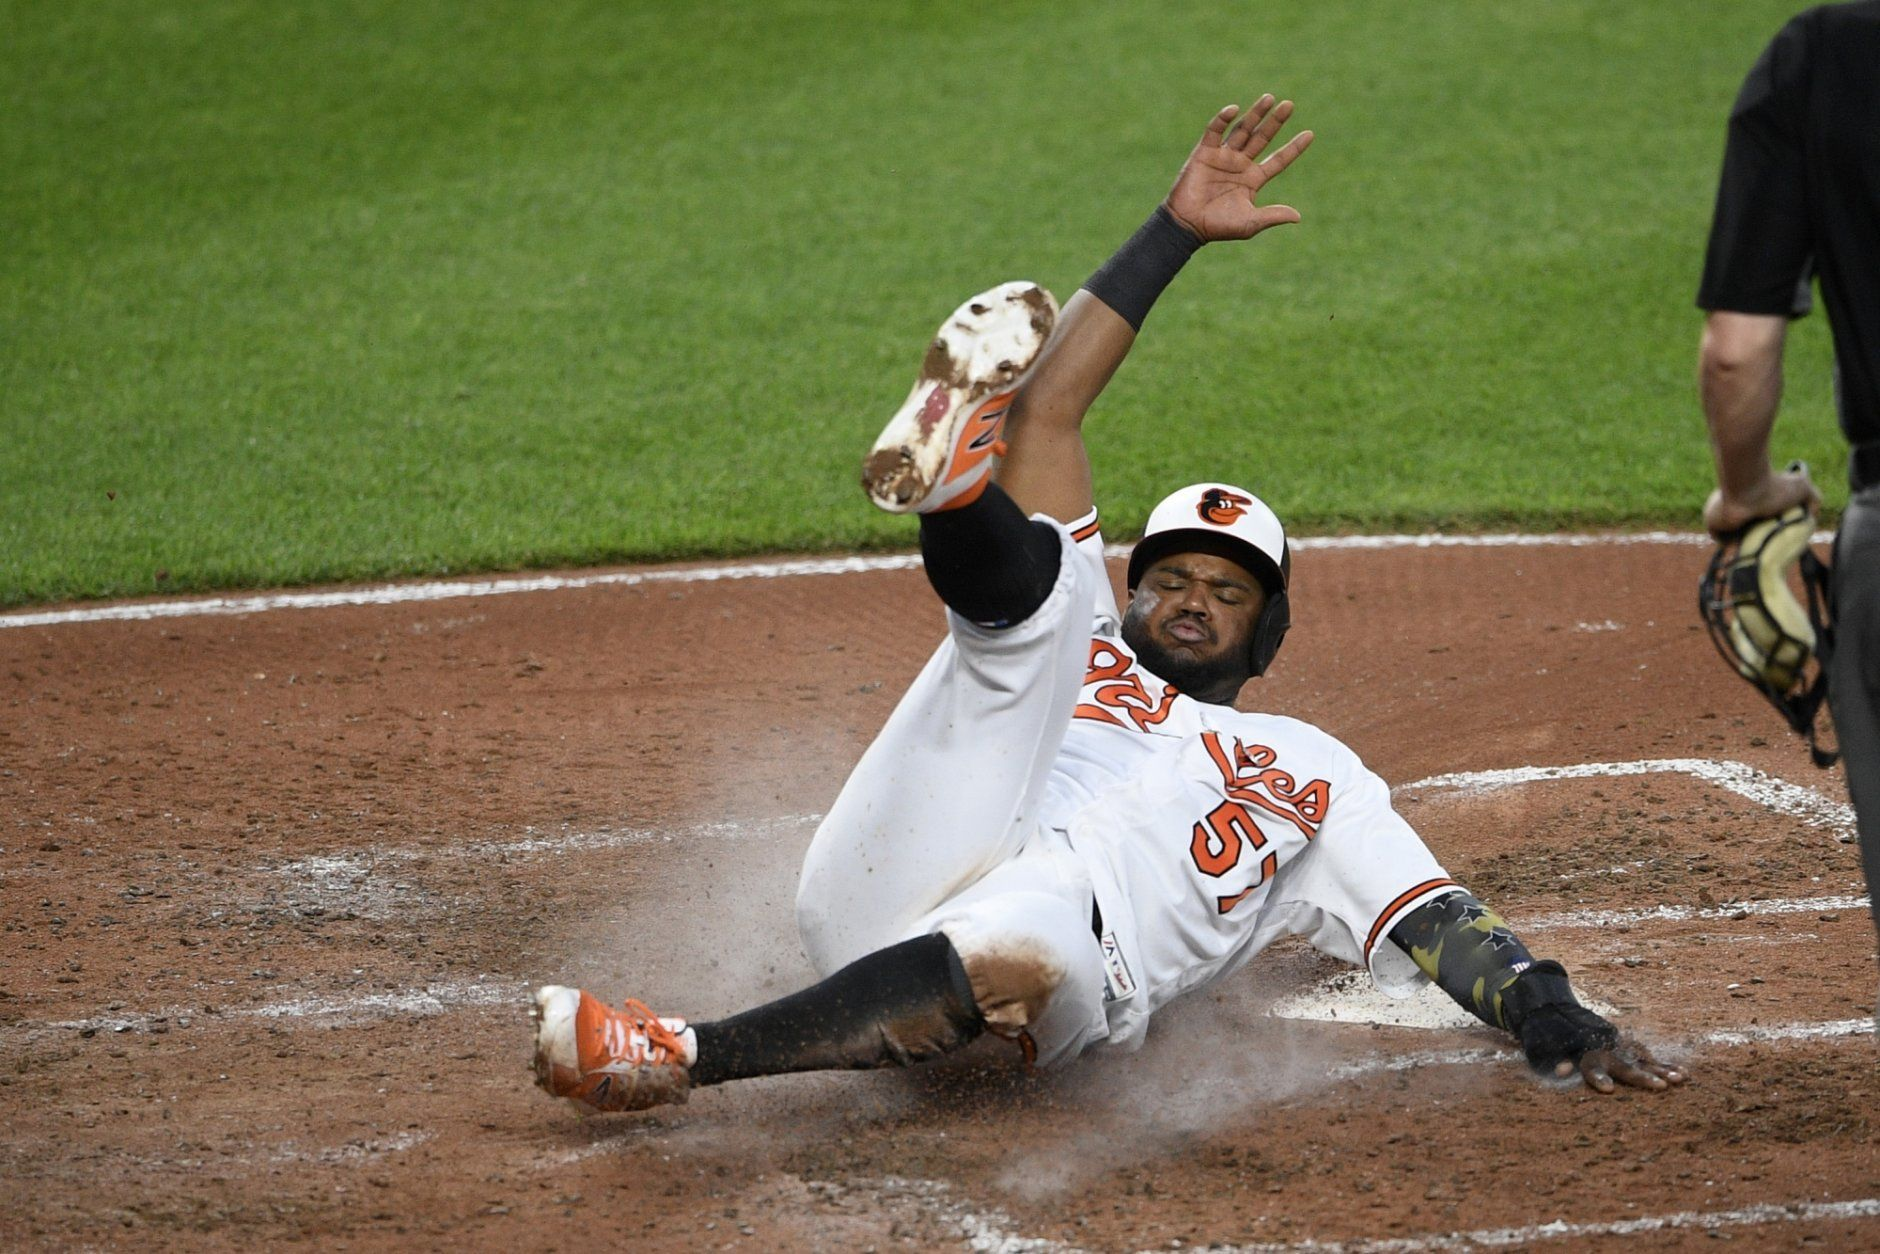 Baltimore Orioles' Hanser Alberto slides home to score a run on a single by Dwight Smith Jr. during the fourth inning of a baseball game against the New York Yankees, Monday, May 20, 2019, in Baltimore. (AP Photo/Nick Wass)